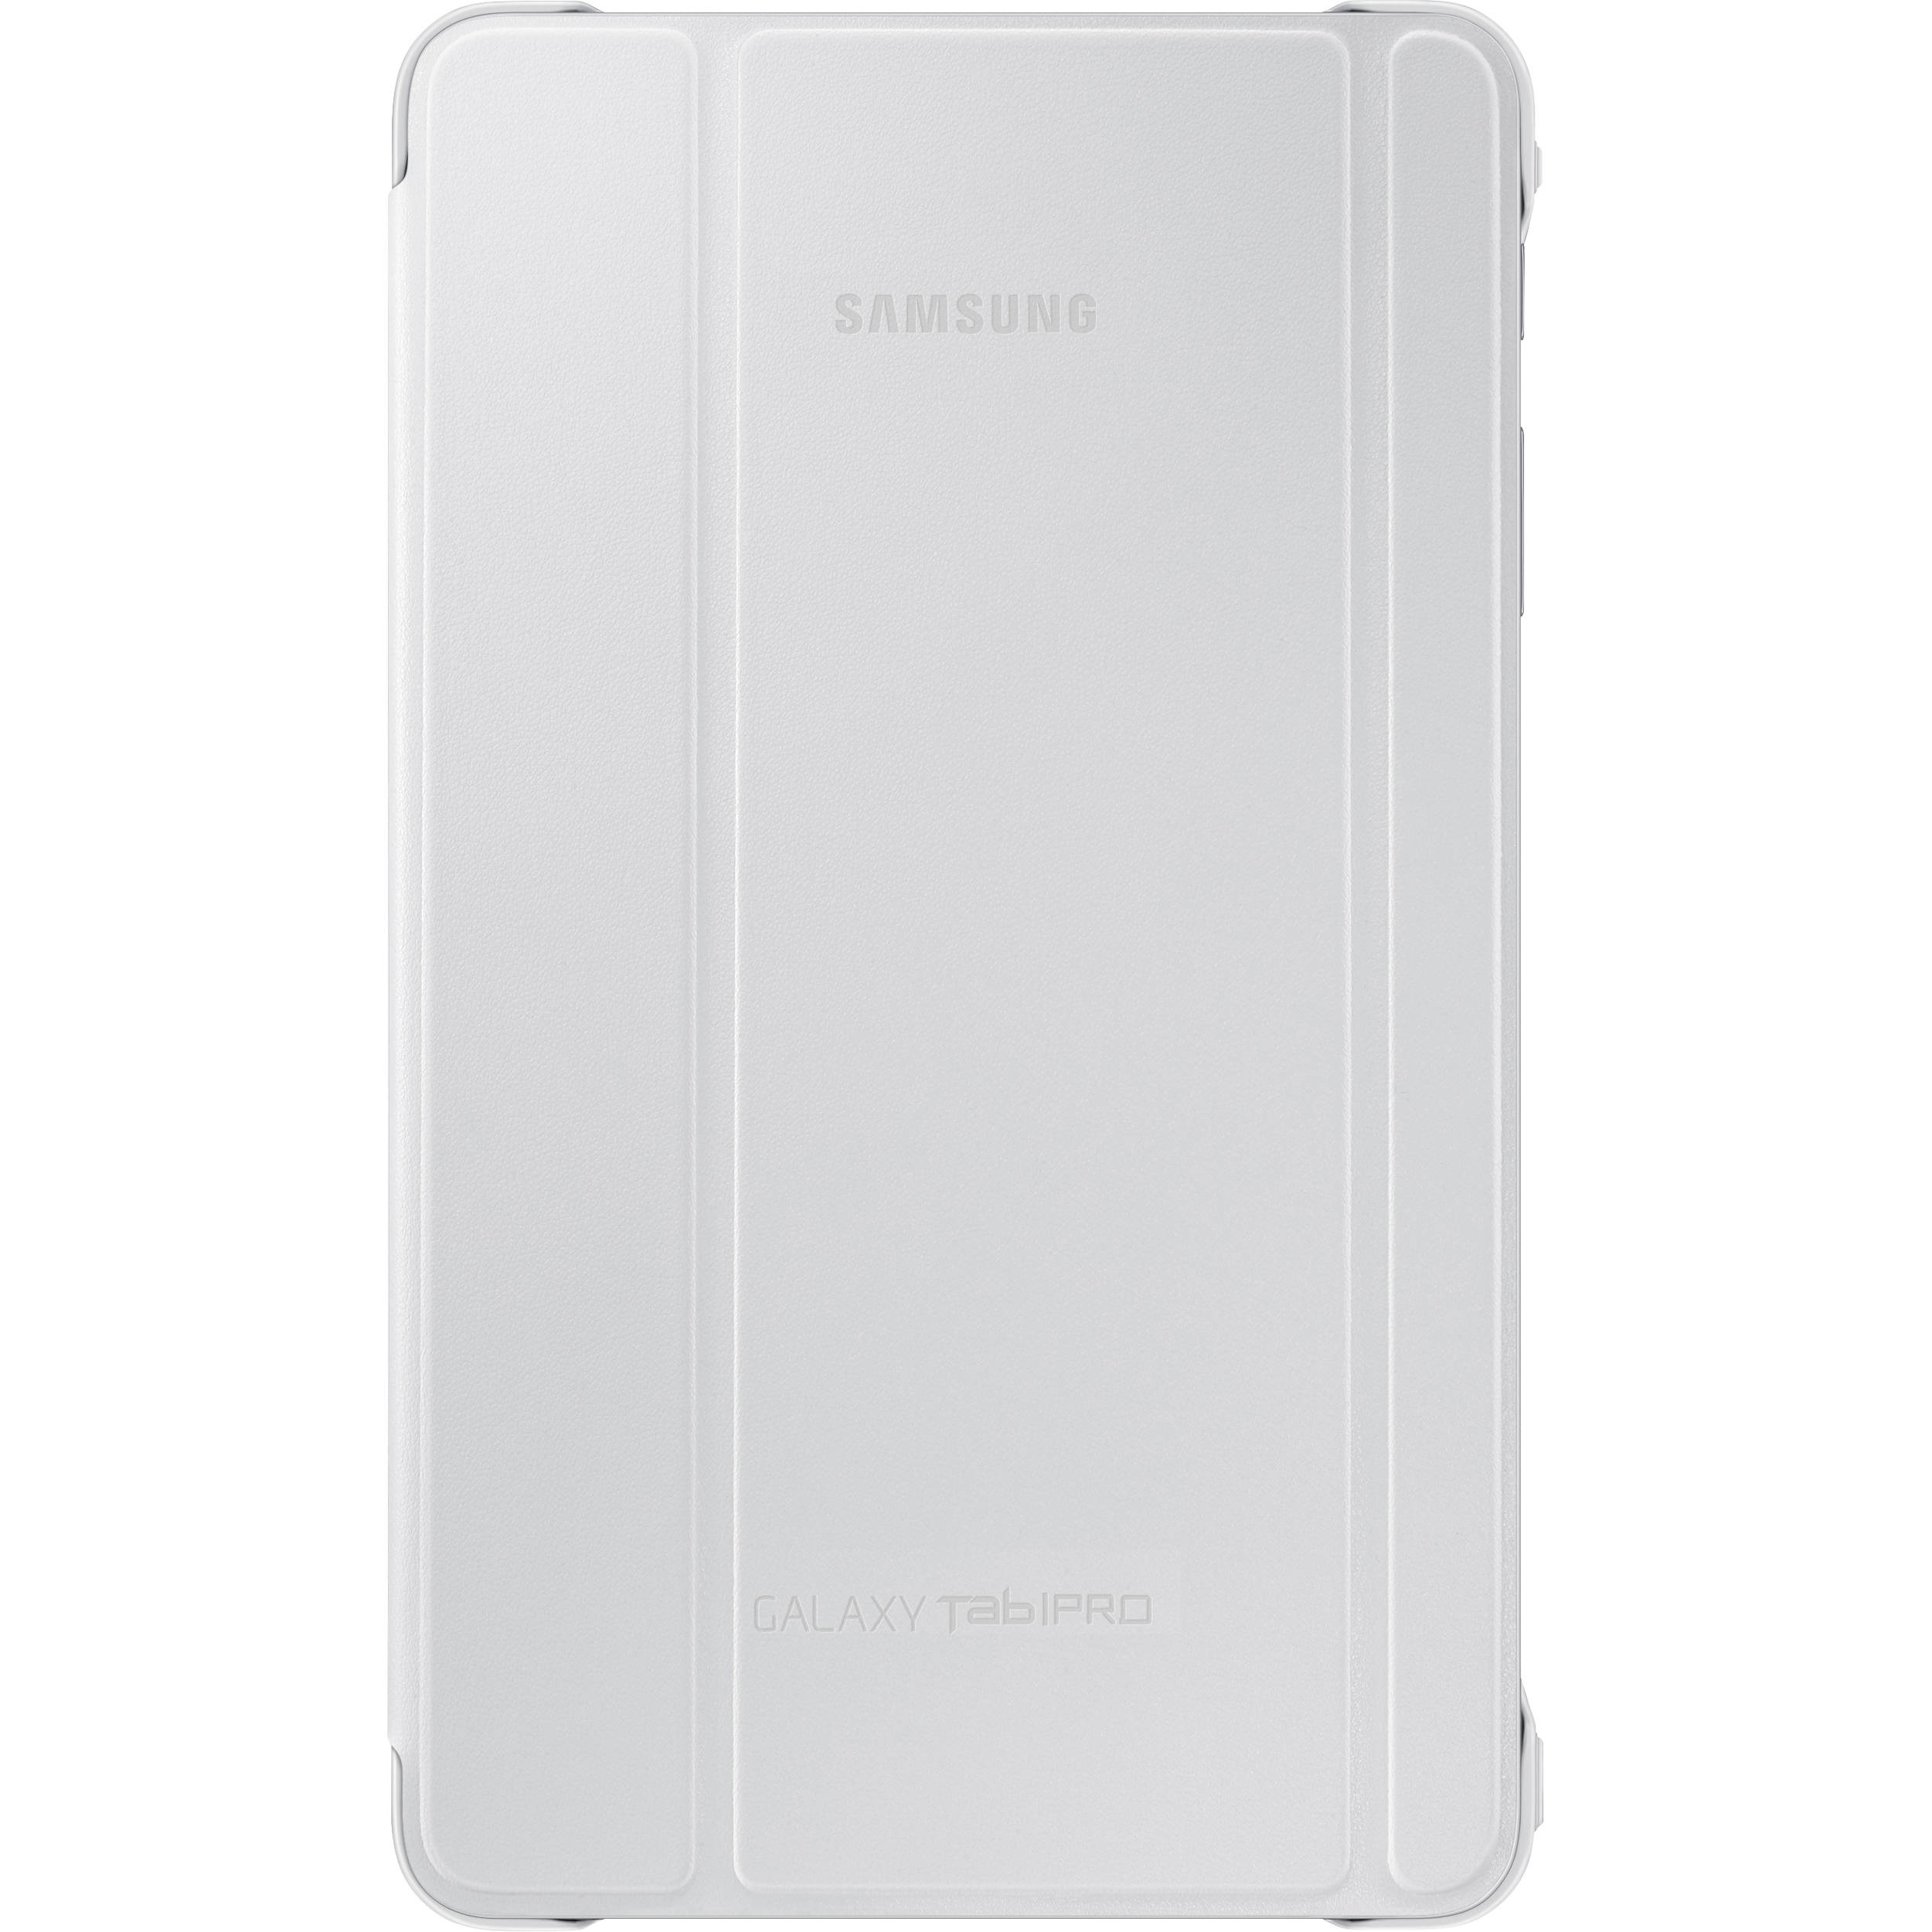 Book Cover White Zip : Samsung book cover for galaxy tab pro white ef